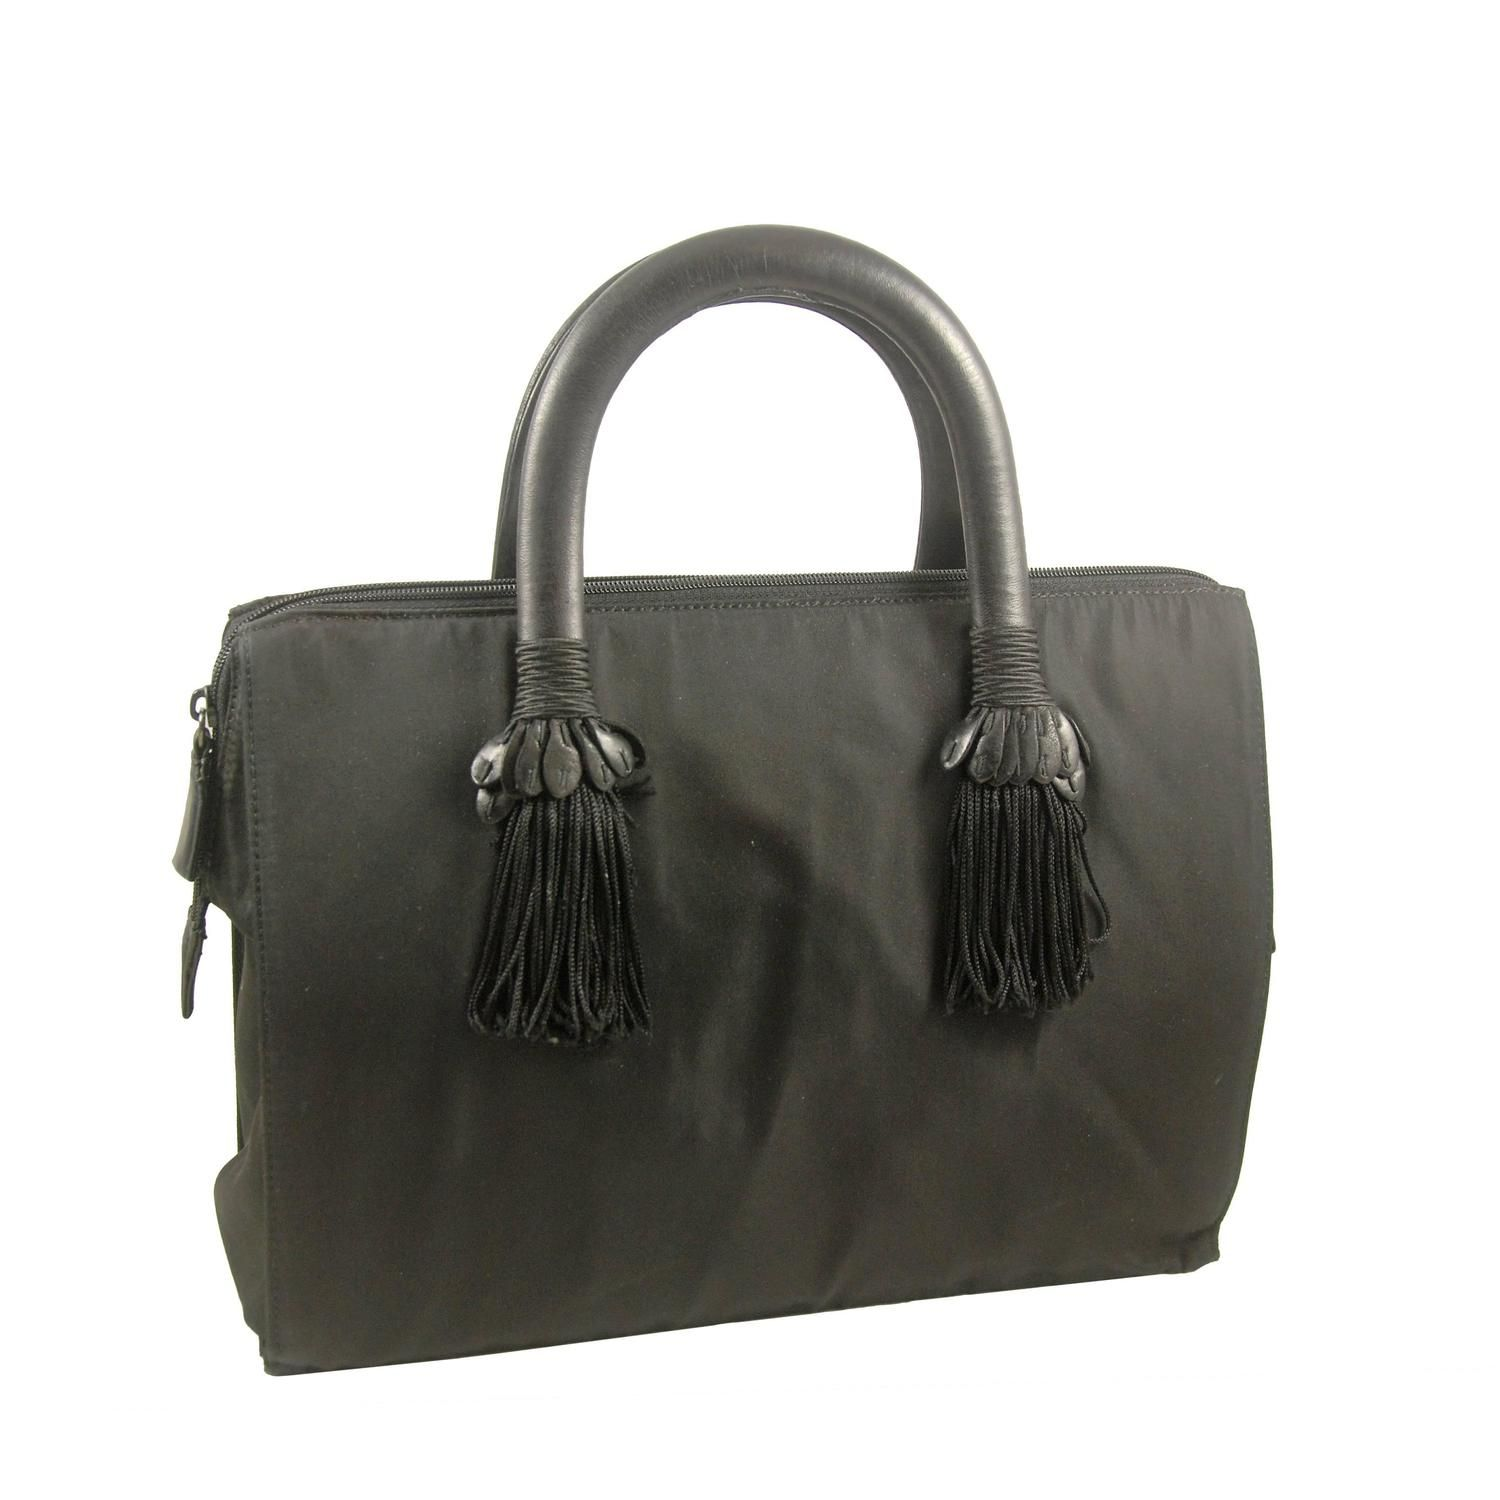 1a87b3ceafed For Sale on - Vintage Prada speedy type bag from the late or early This bag  is embellished with black fringe on the front and rear.